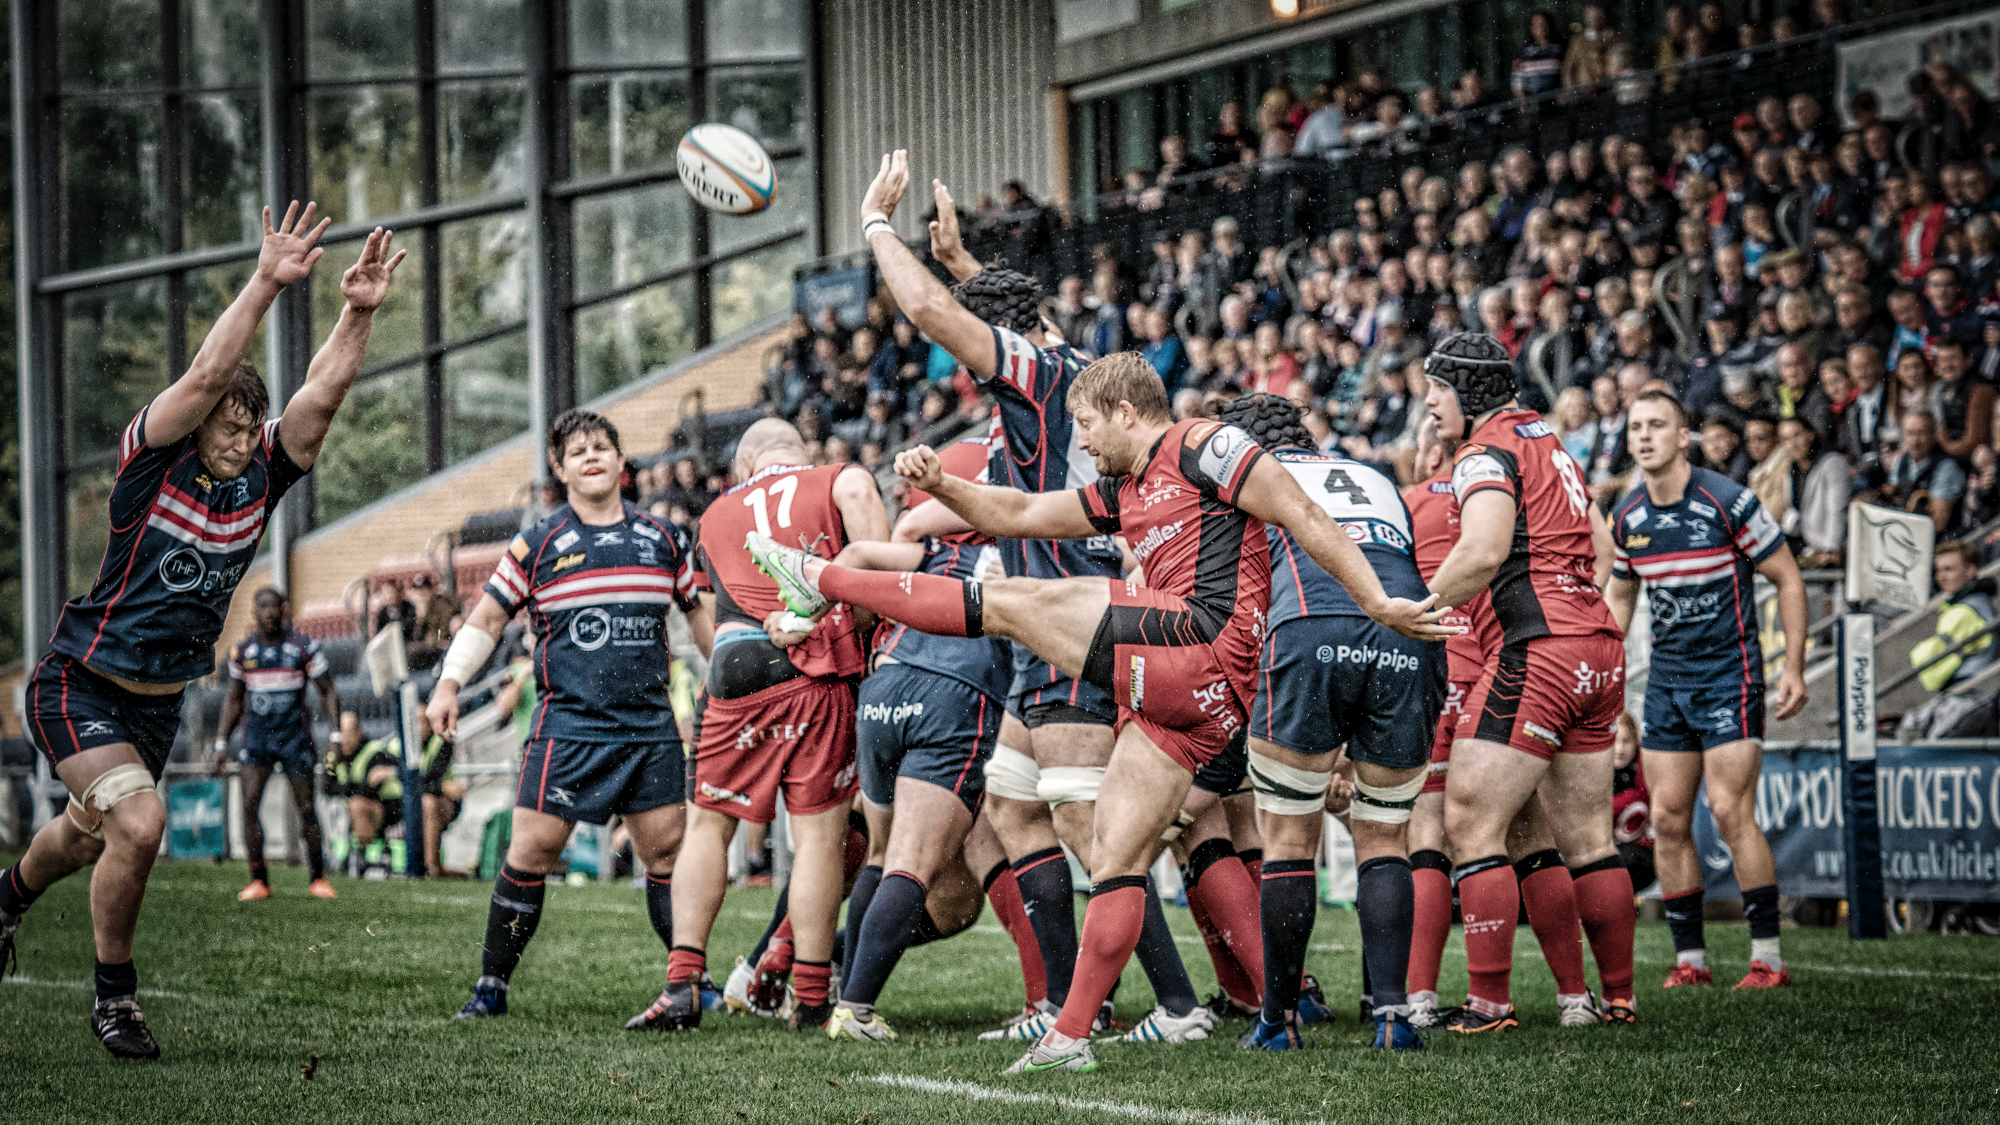 A Hartpury defensive kick with an attentive crowd as backdrop